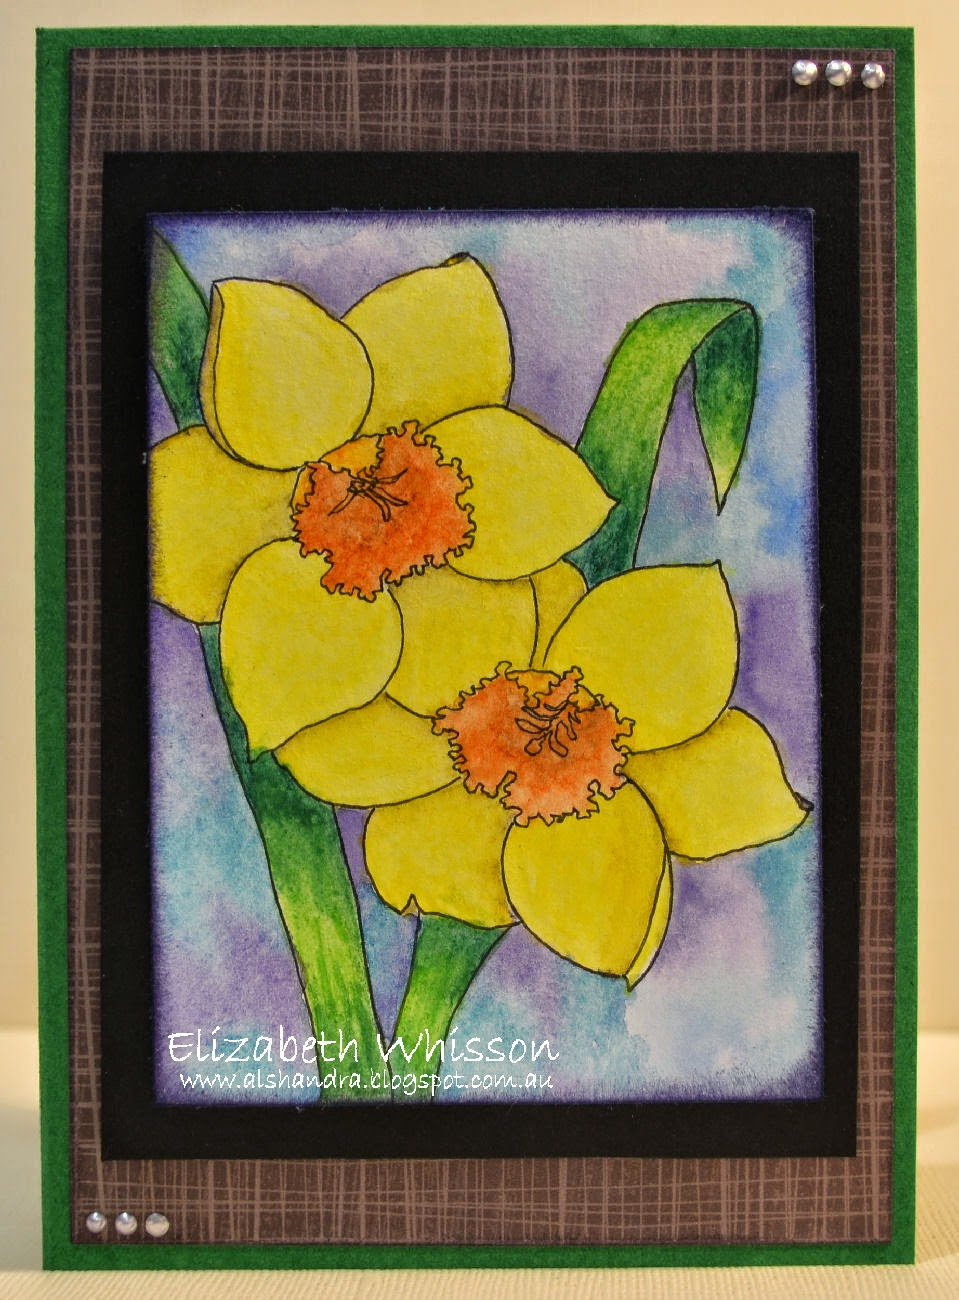 Elizabeth Whisson, handdrawn image, daffodils, watercolour pencils, watercolor pencils, Rexel Derwent